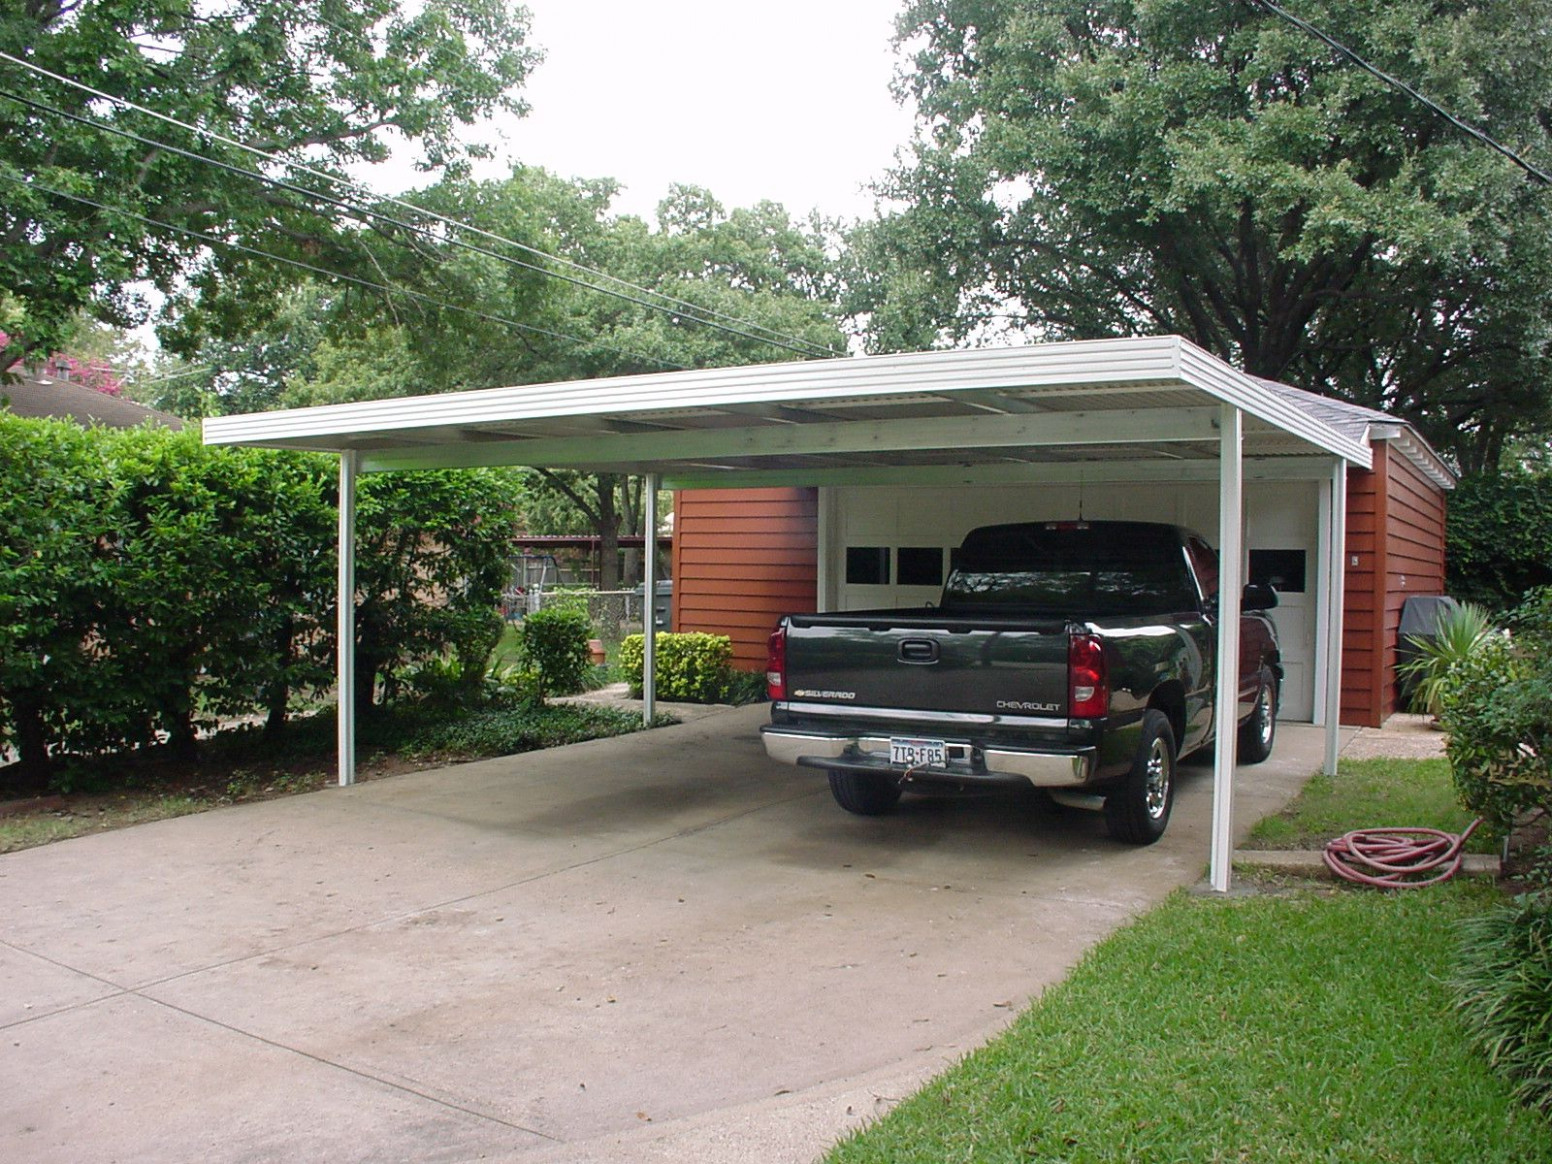 12x12 Carport Attached To Home Modernhomepatio.com ..